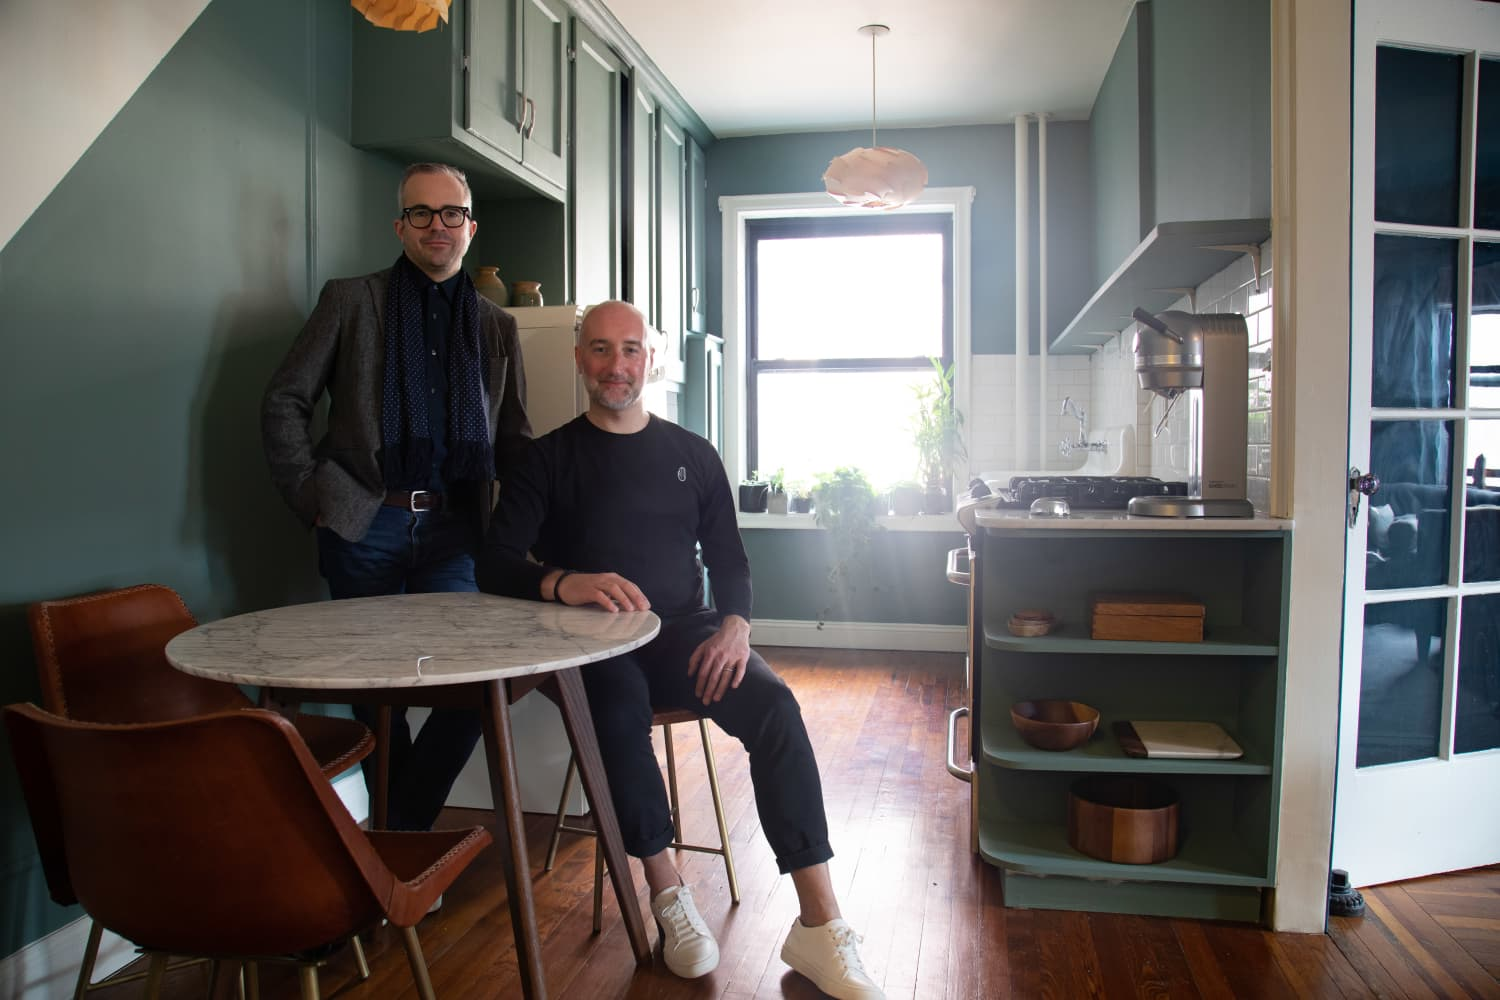 Hoteliers Turn a Cozy NYC Apartment into a Moody, Hygge Paradise